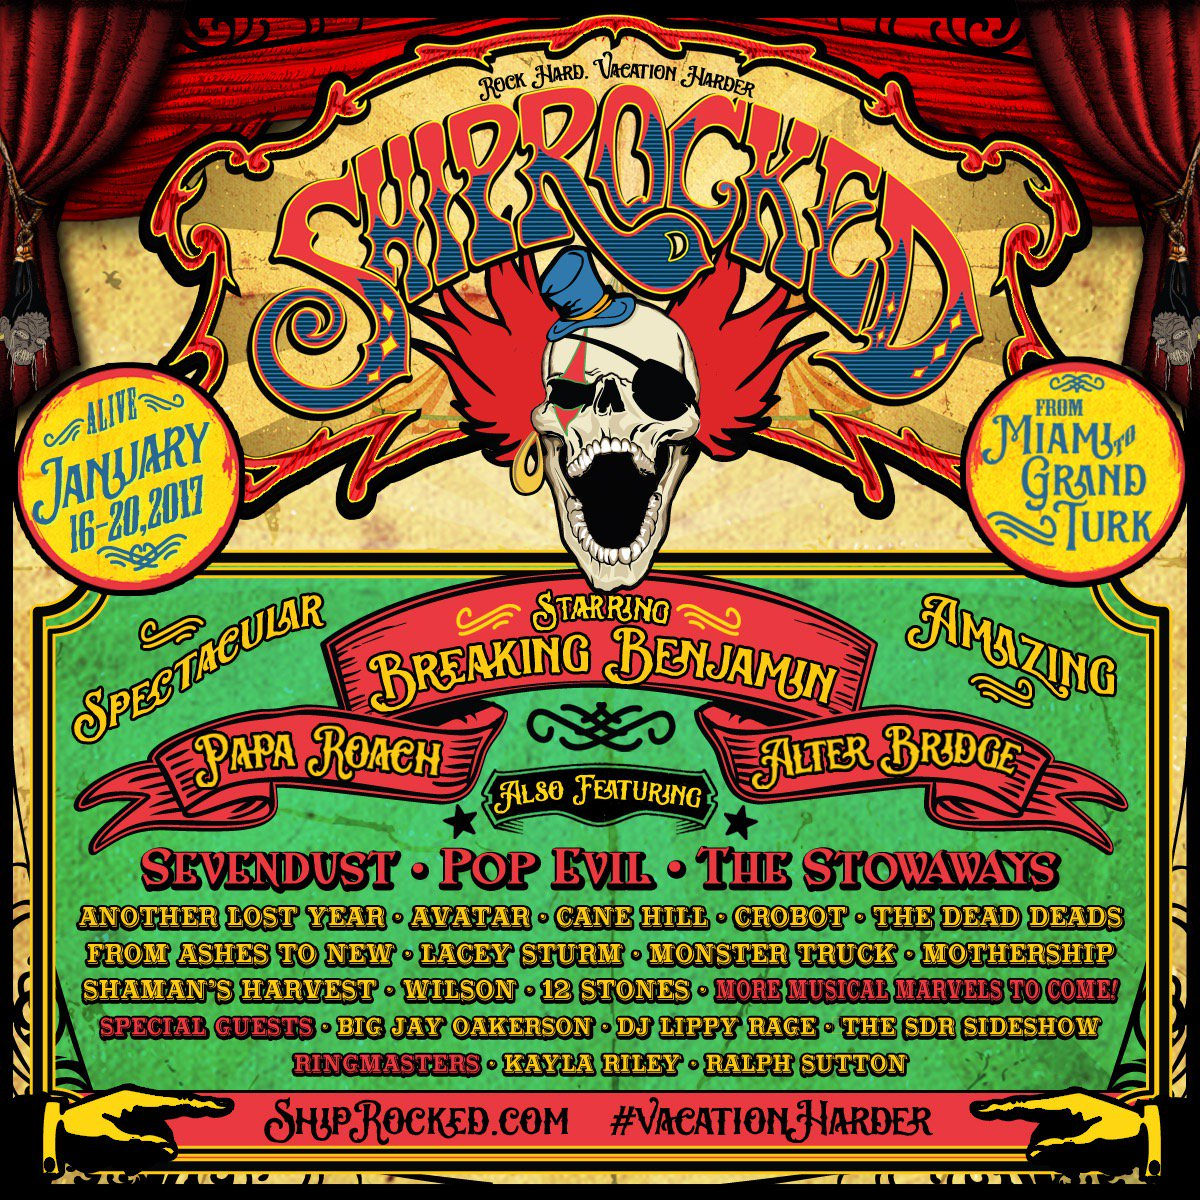 Ladies & Gentlemen! Boys & Girls! Behold the amazing lineup of Musical Marvels performing onboard ShipRocked 2017! https://t.co/x8PKuyVWnn